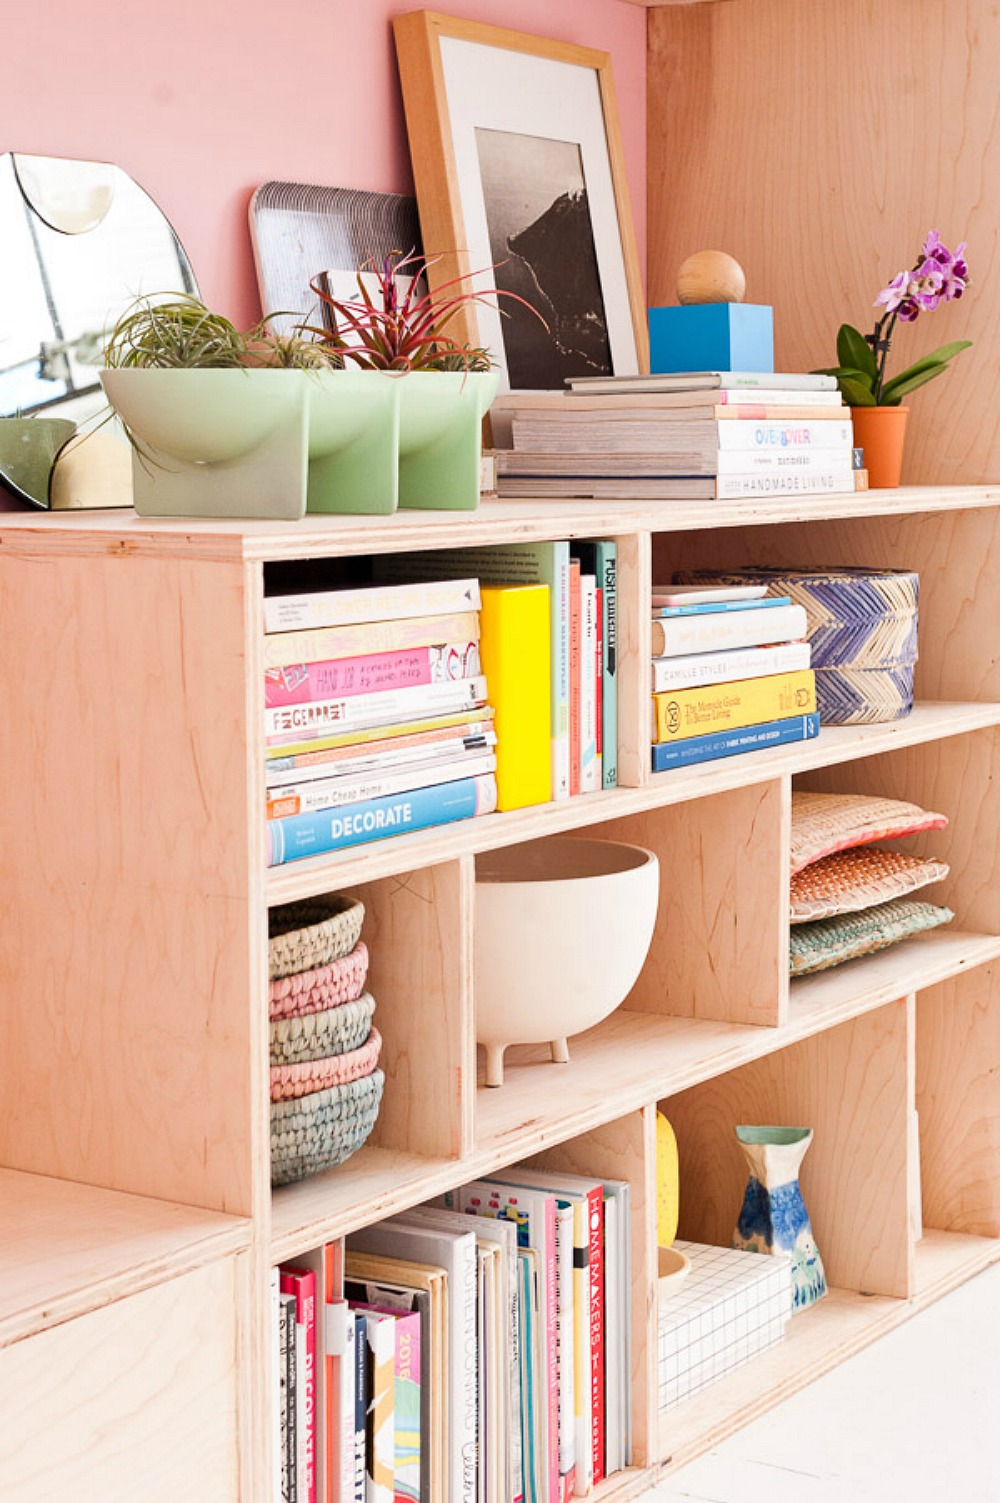 Modern DIY Plywood Projects - 15 Ideas to Inspire You